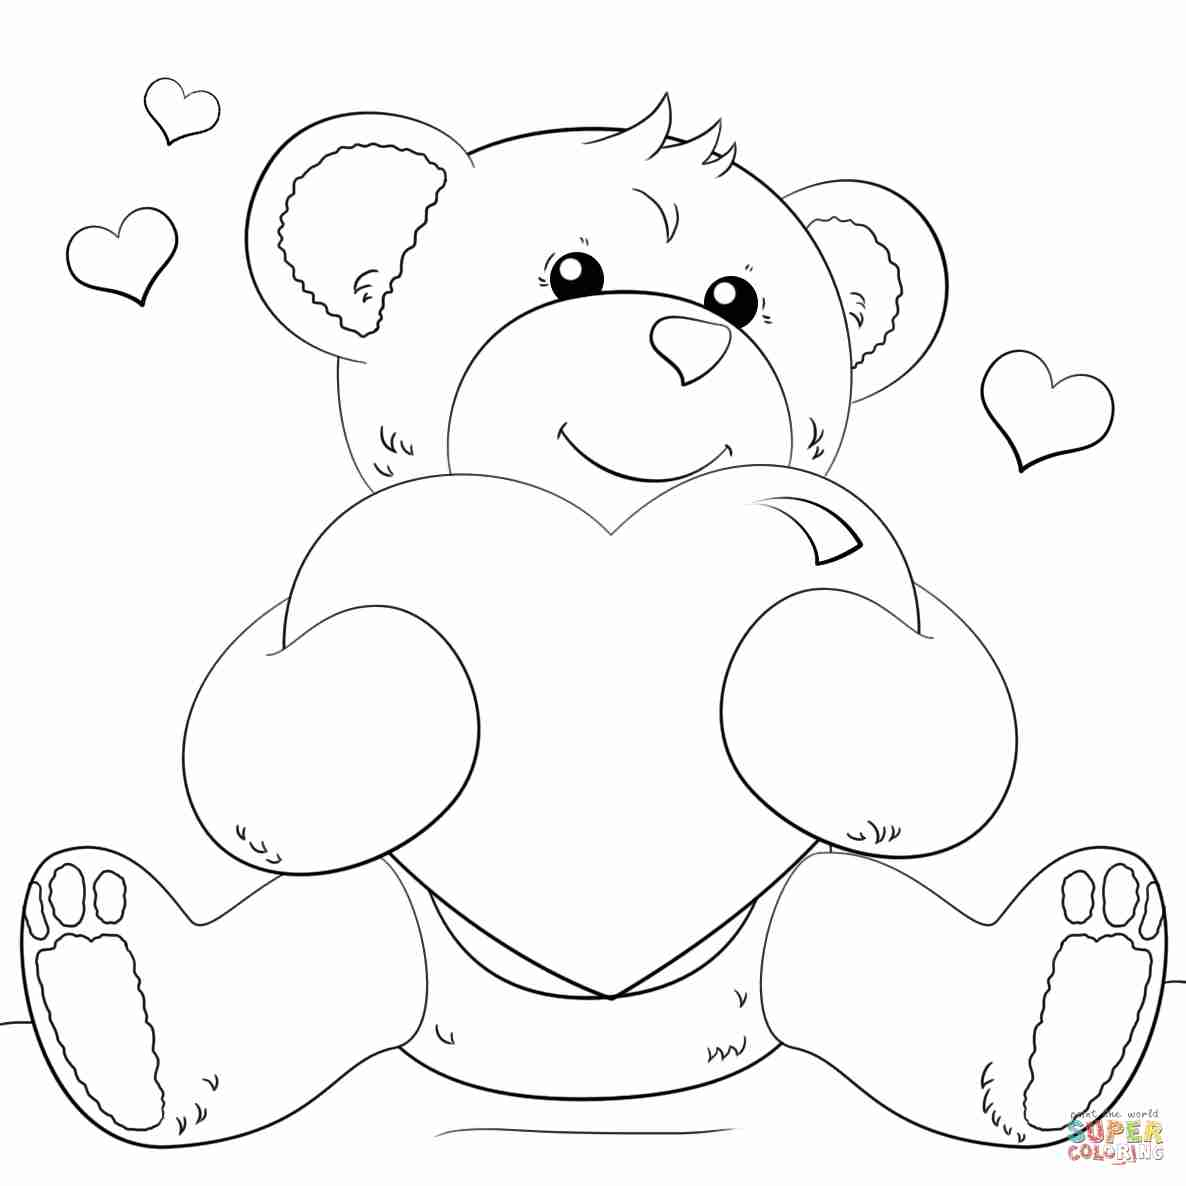 1186x1186 Heart Coloring Pages For Teenagers Day Book And Hearts Lively